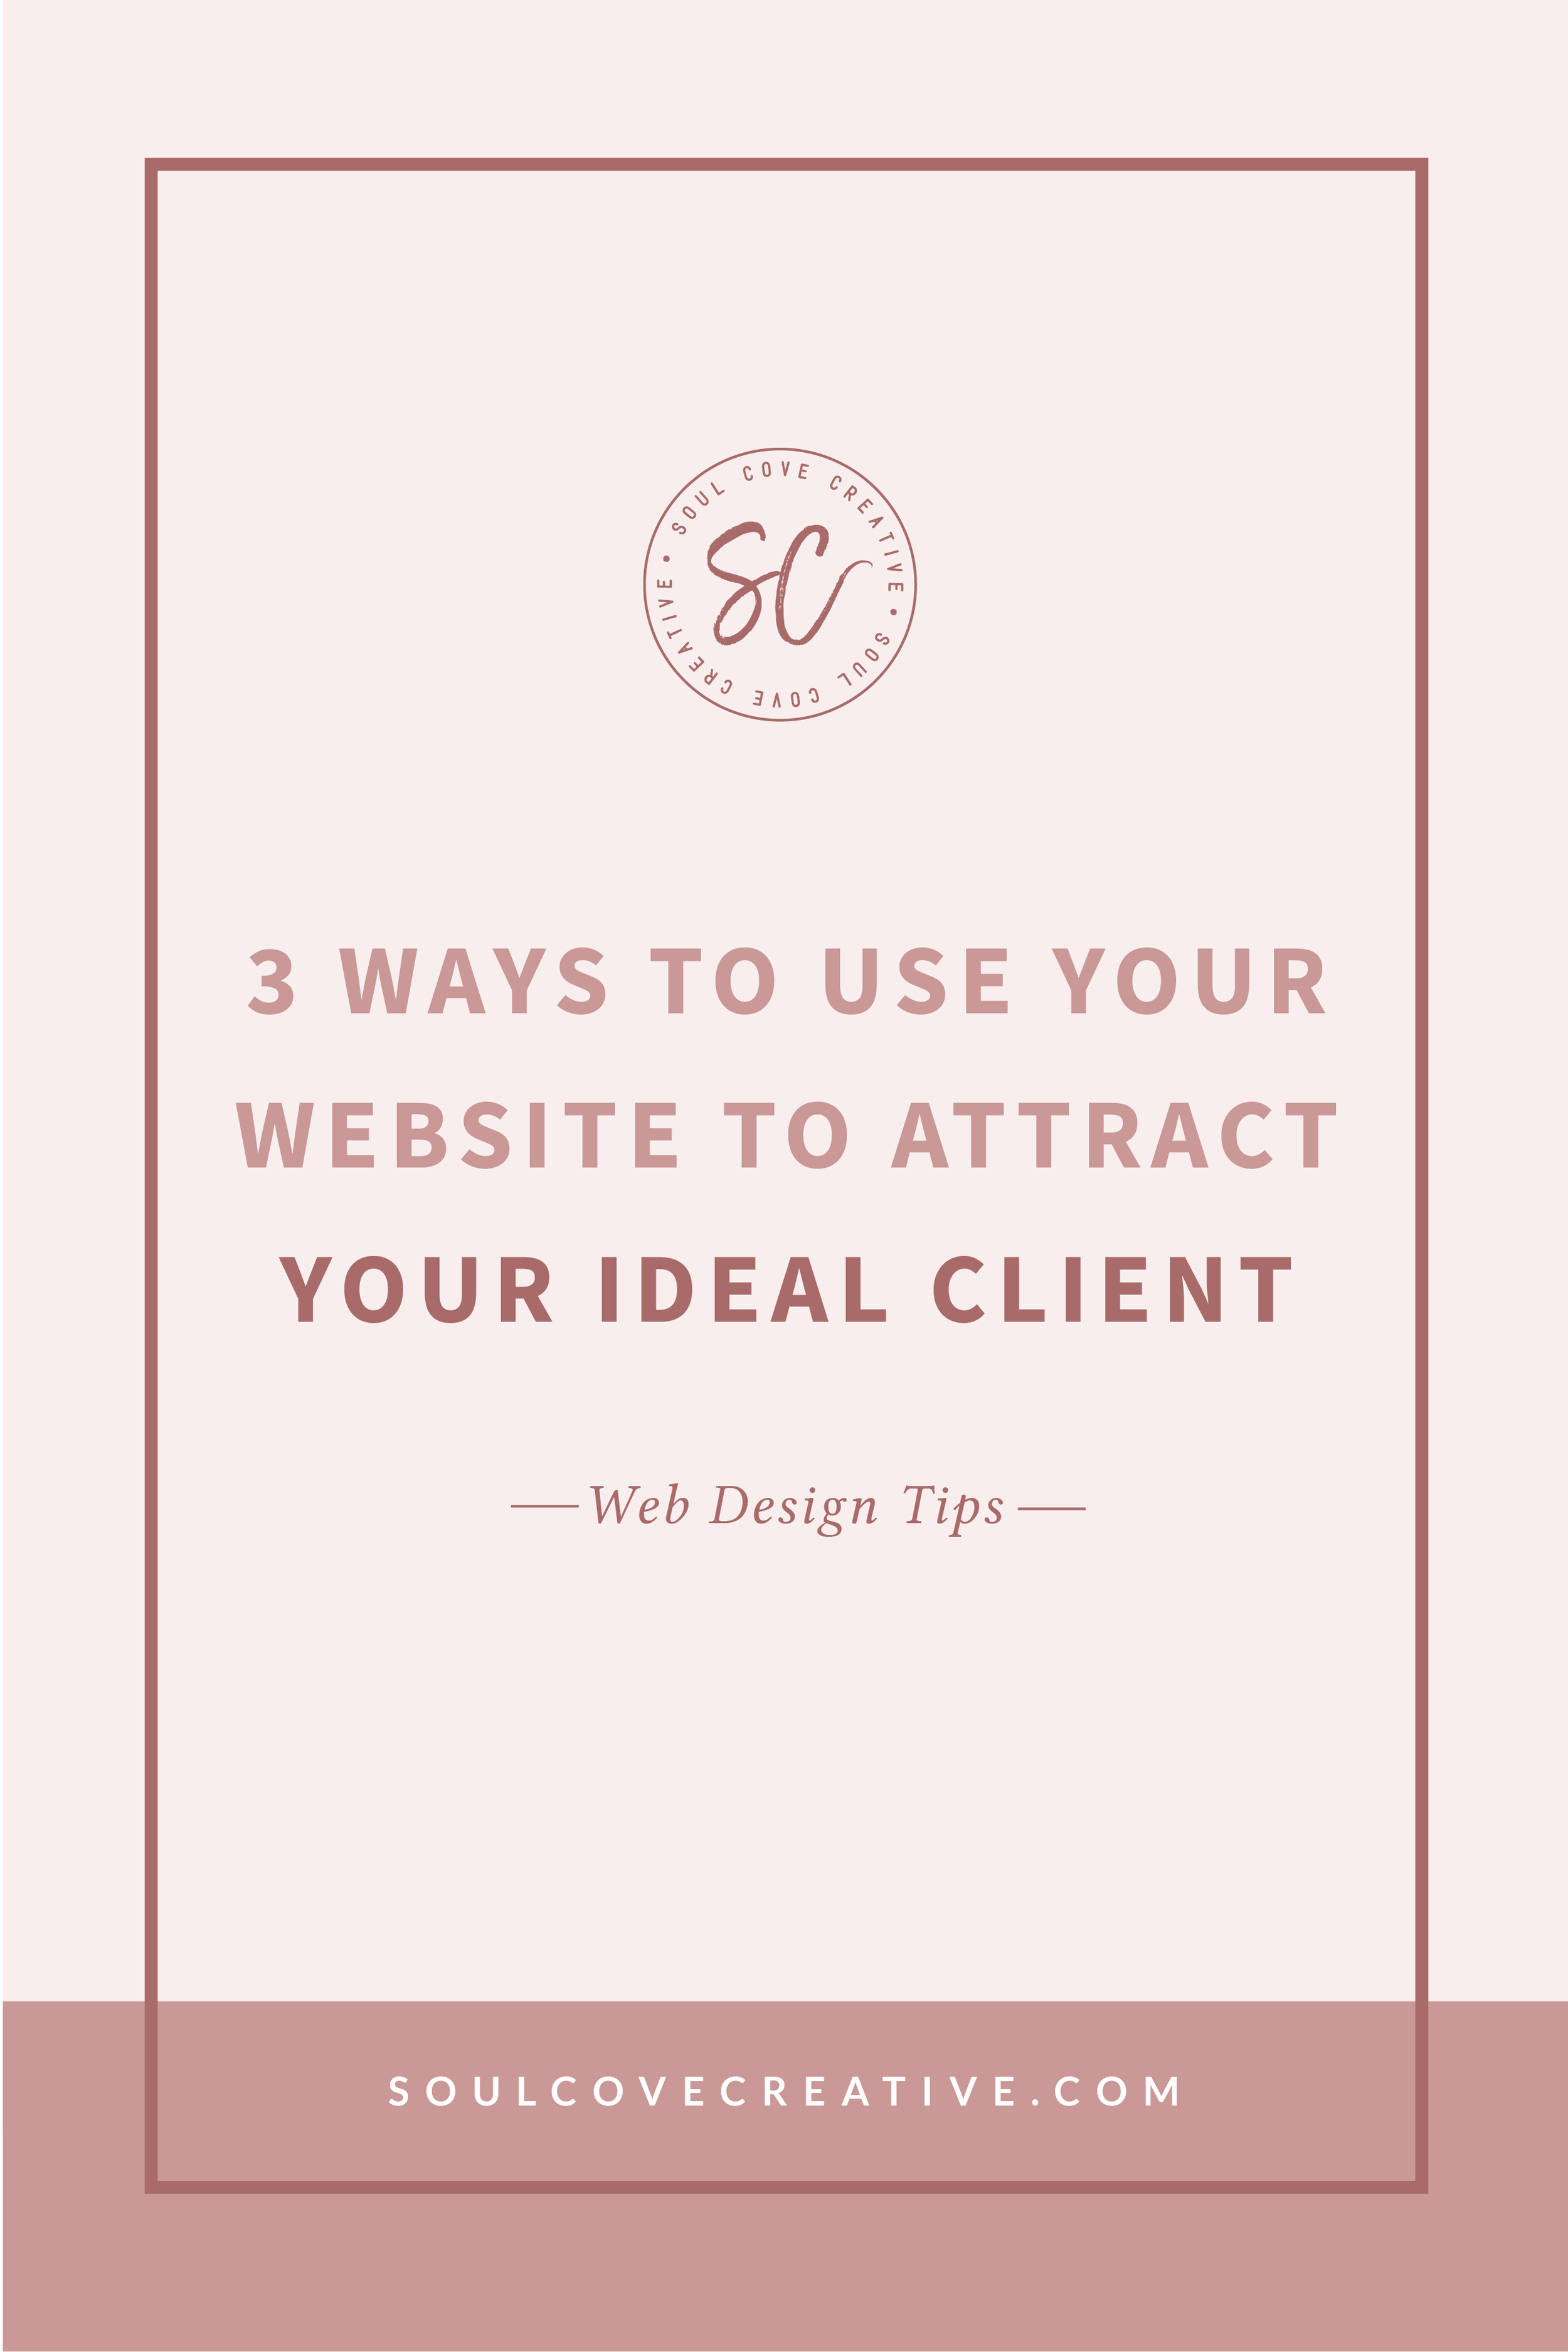 3 ways to use your website to attract ideal clients